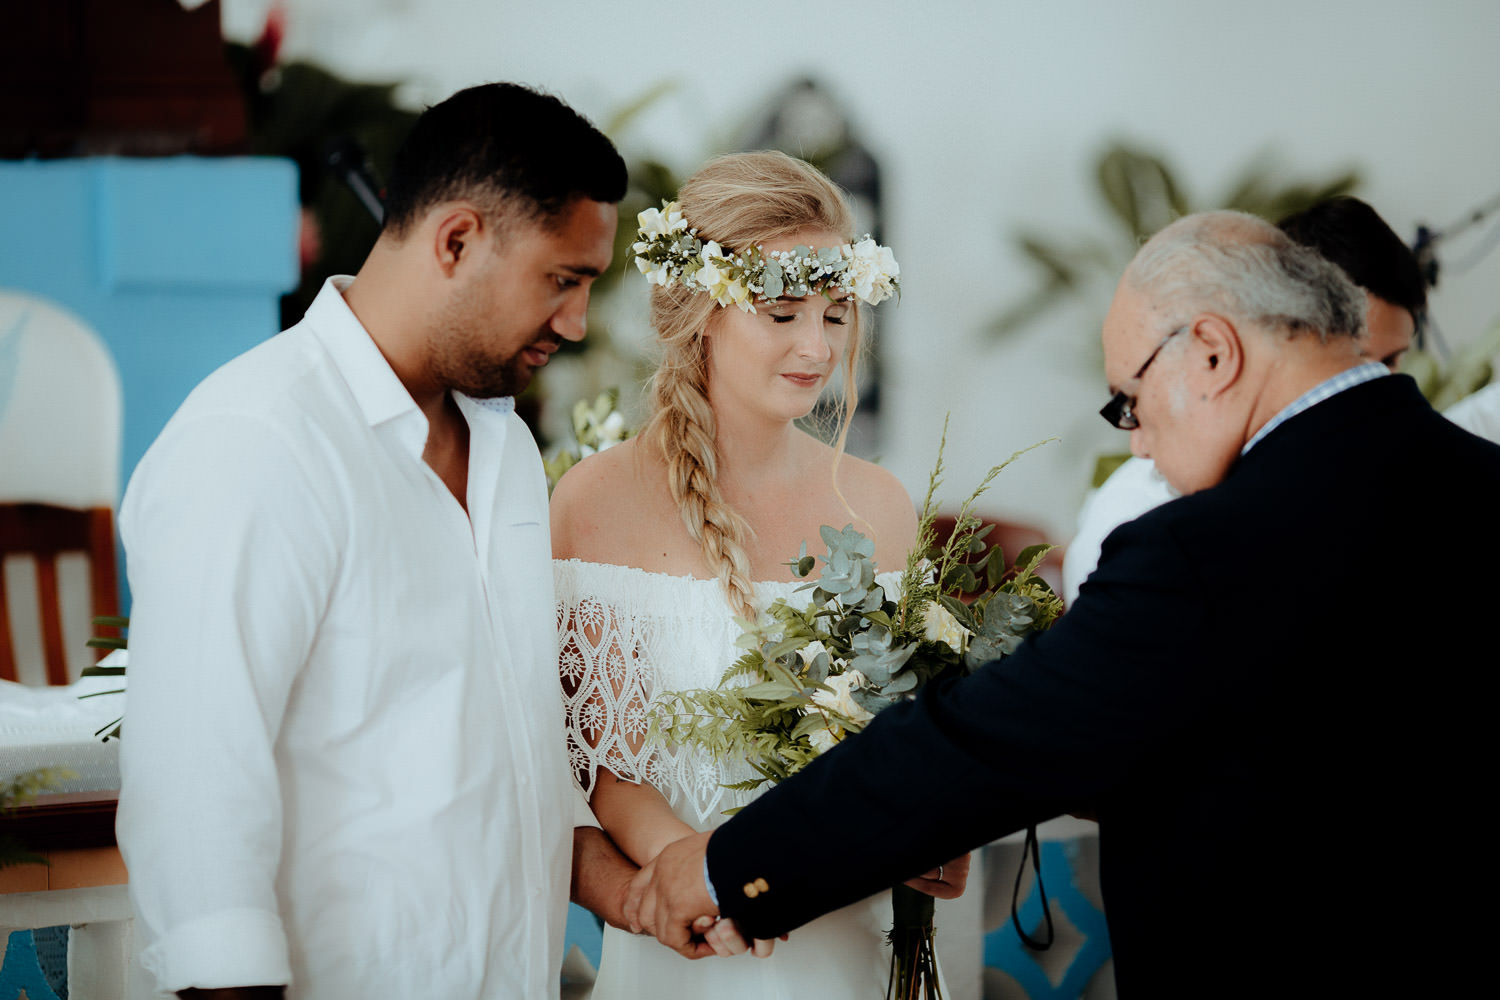 Rorotongan-wedding-photographer-57766.jpg